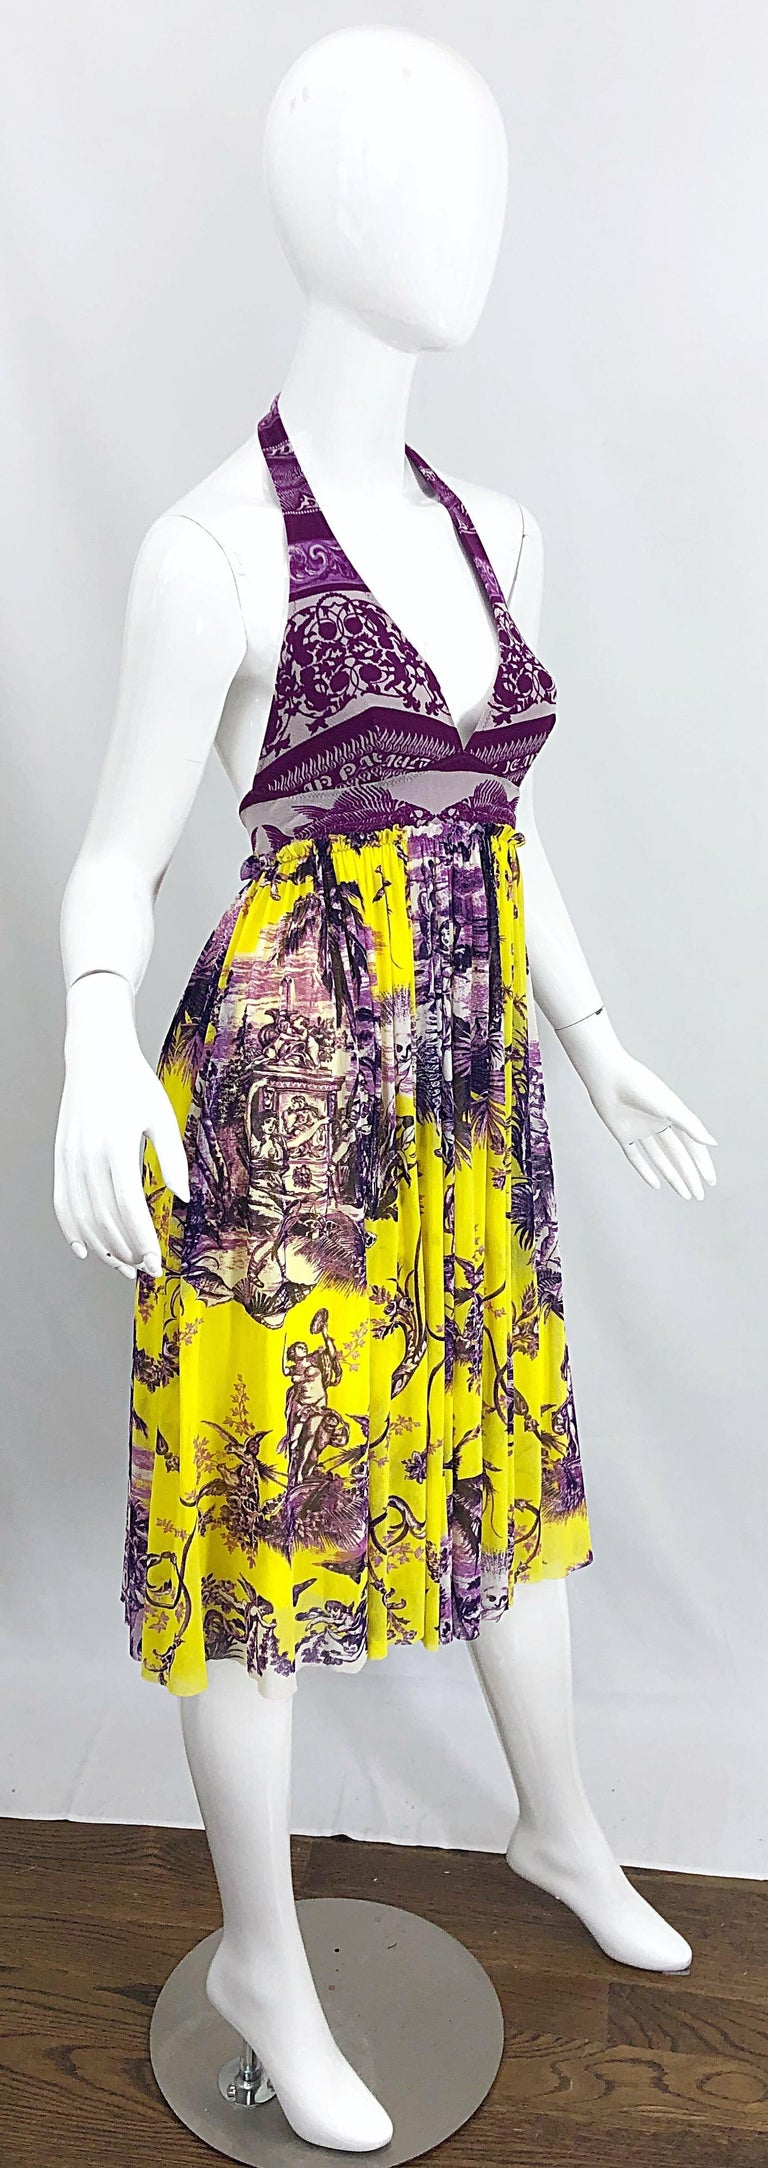 1990s Jean Paul Gaultier Mythical Print Yellow and Purple Vintage Halter Dress For Sale 2